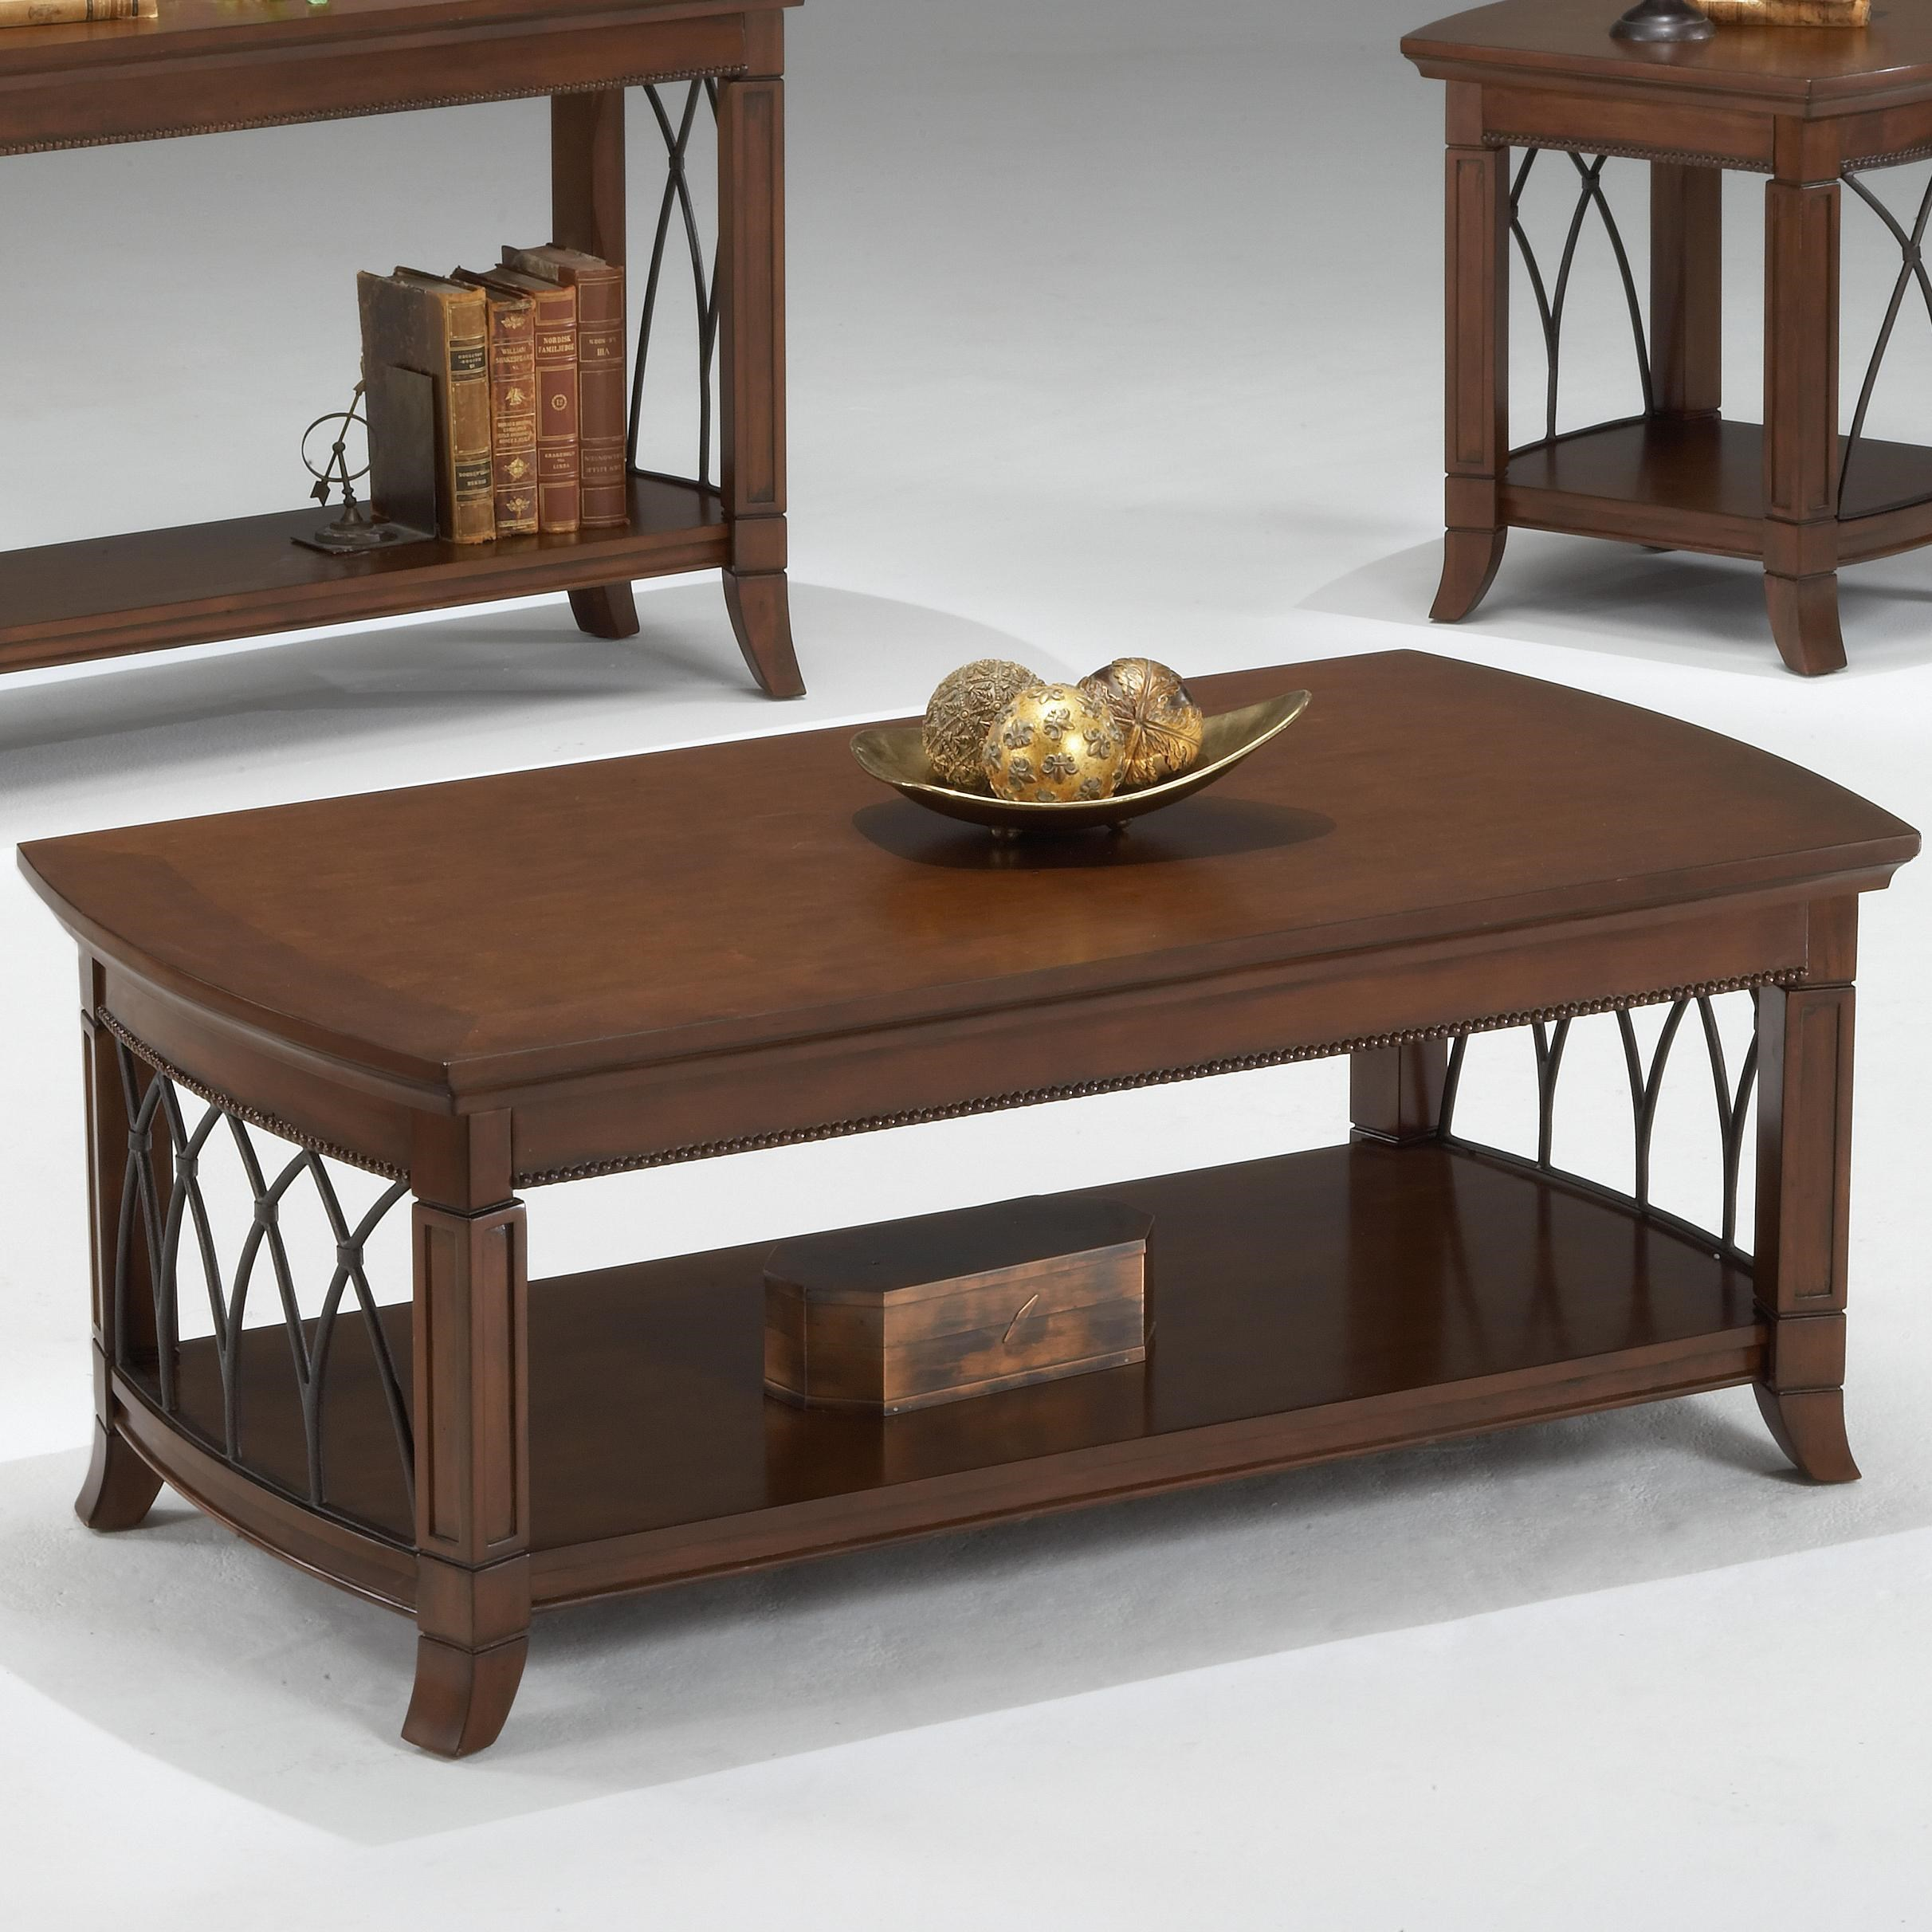 Superior Bernards Cathedral Cherry Coffee Table W/ Lower Shelf